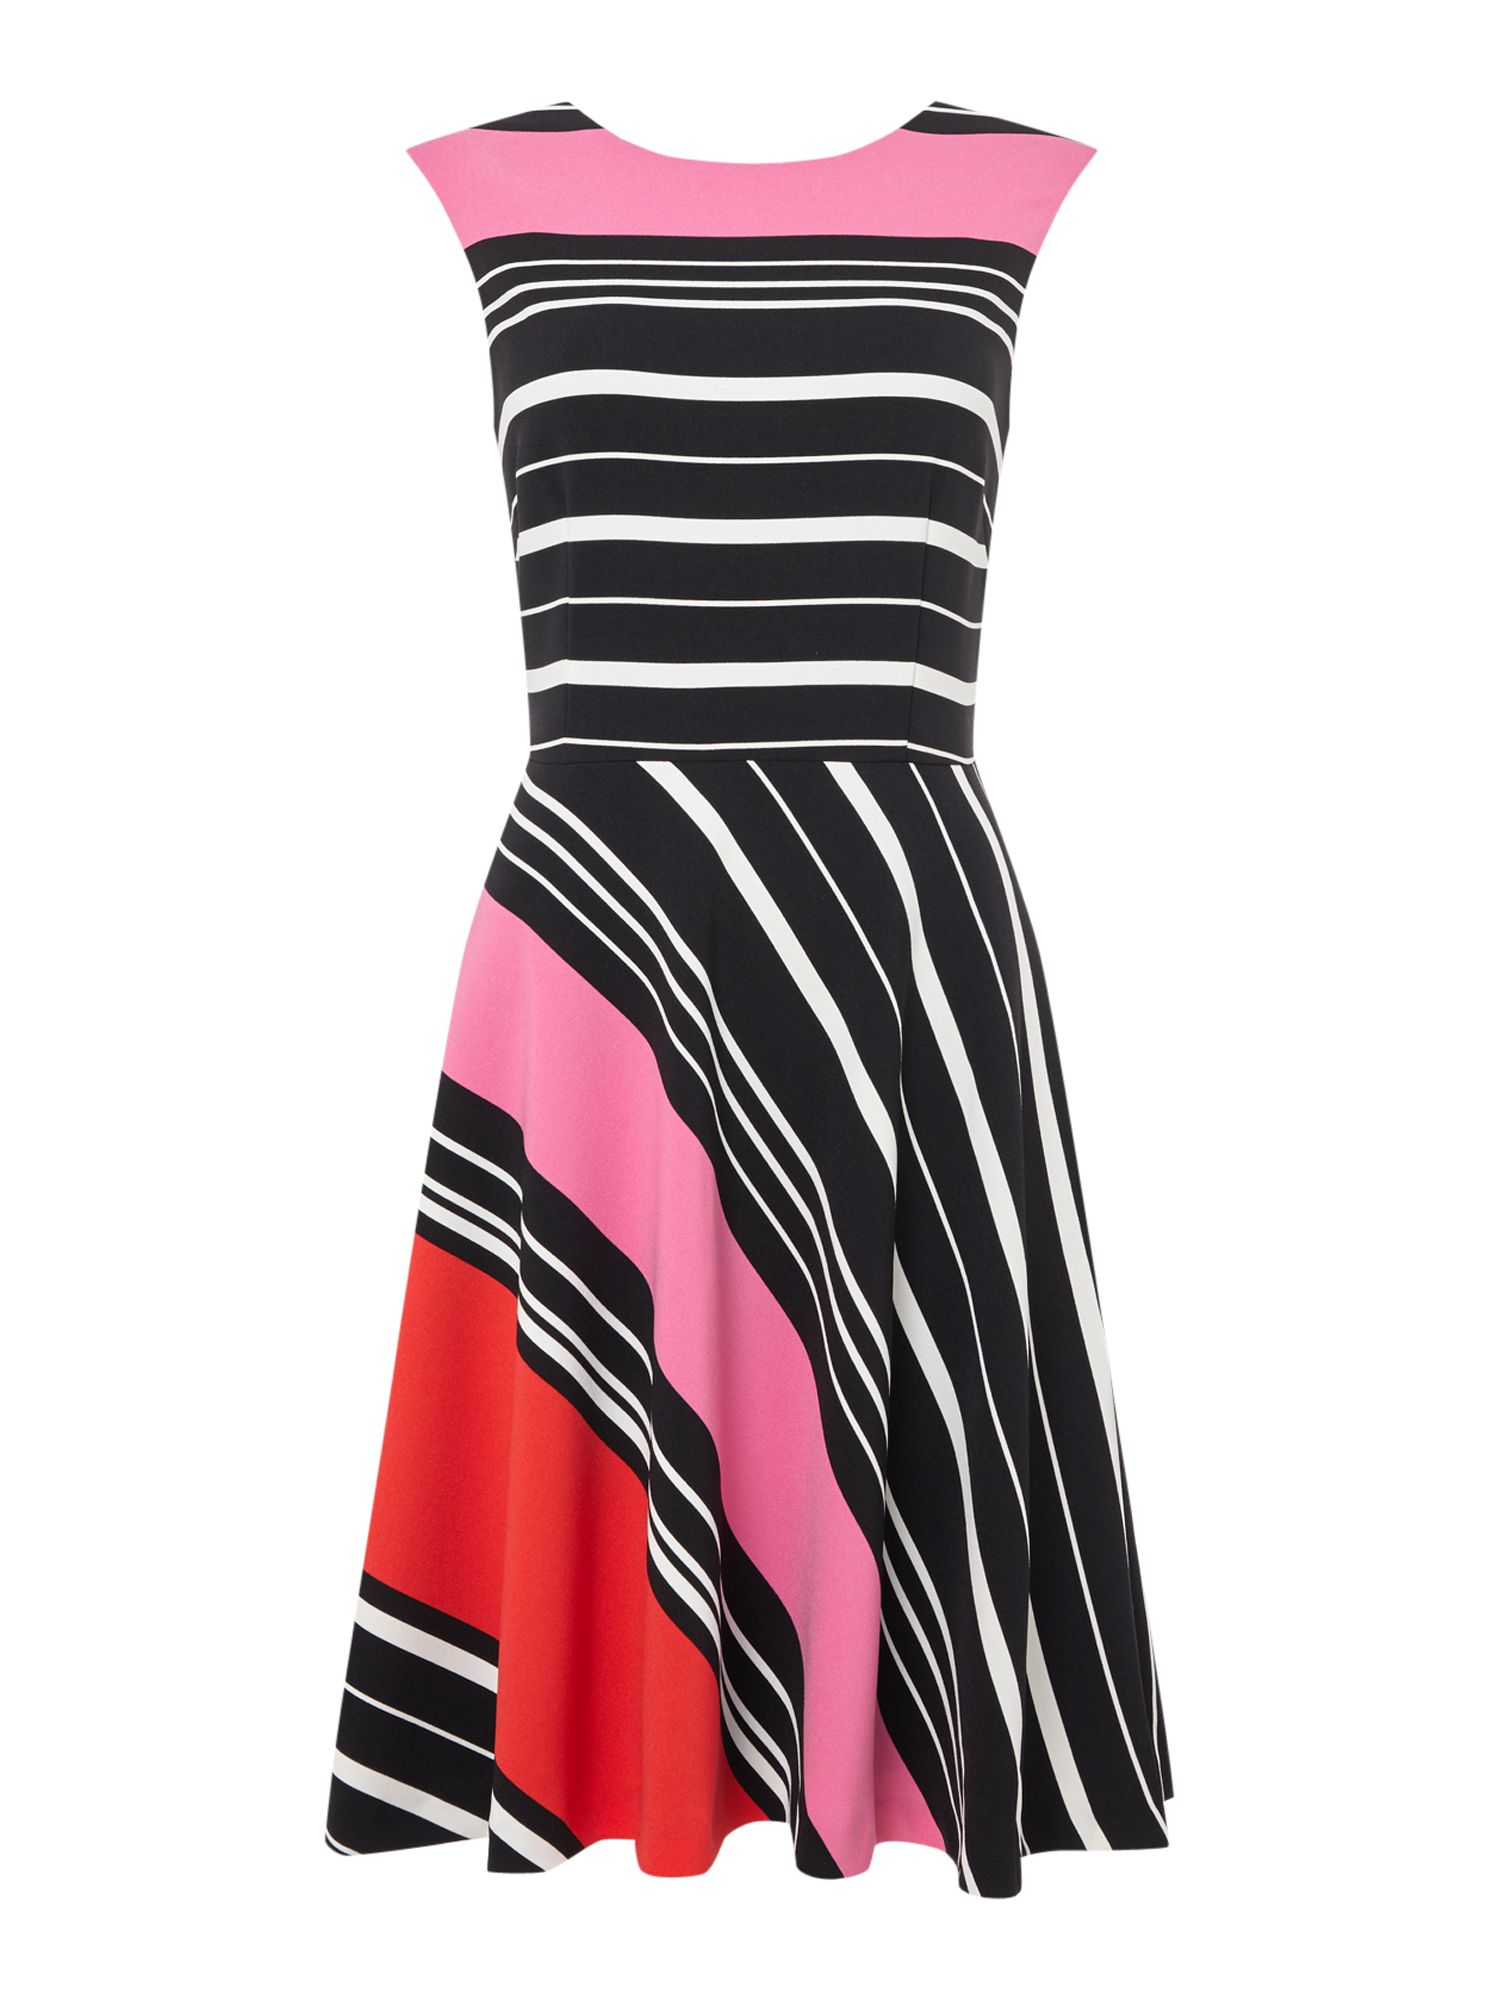 Tahari ASL Striped Sleeveless Fit and Flare Dress, Multi-Coloured